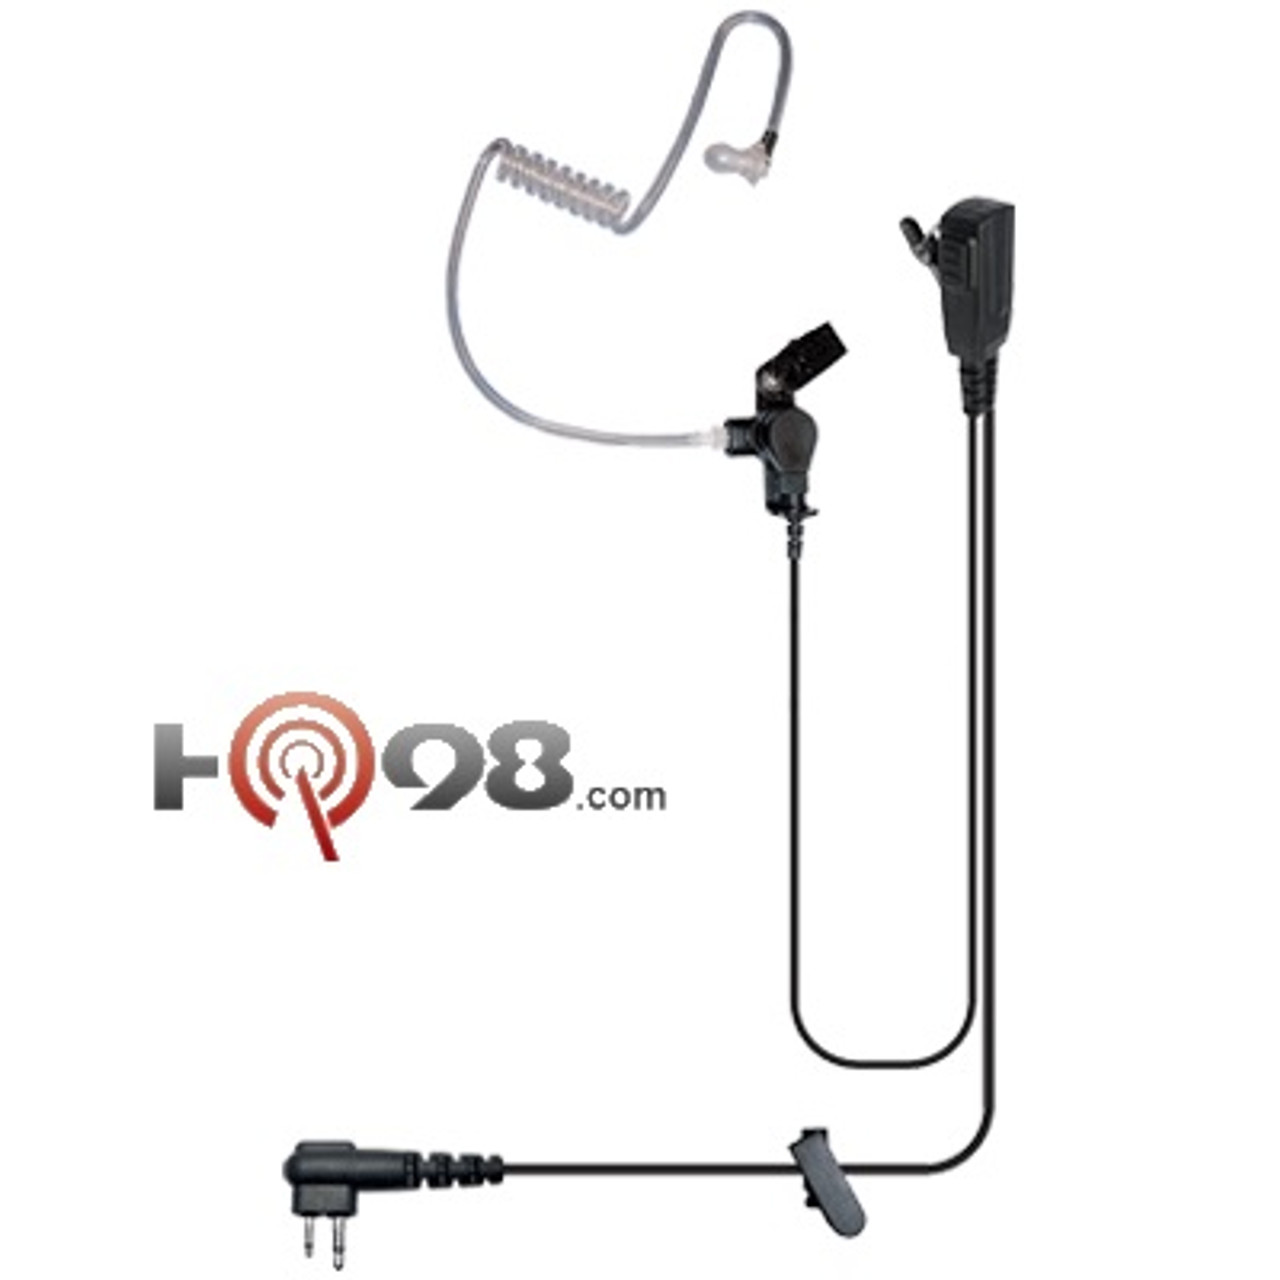 COILED AUDIO ACOUSTIC TUBE EARPIECE WITH EAR HOOK FOR RADIO HEADSET EARPHONE MIC